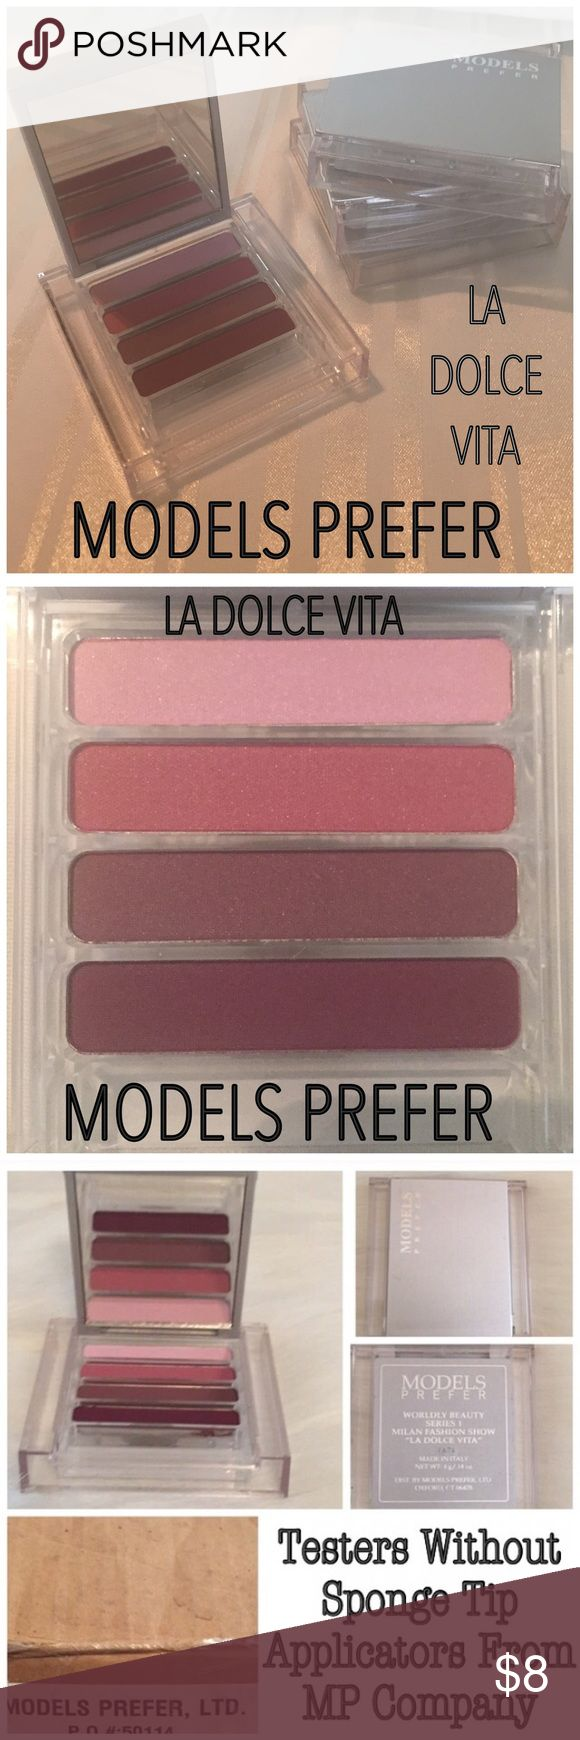 Models Prefer La Dolce Vita Quad Eyeshadow Palette Includes One Palette. Colors are: Pink, Mauve, Purple & Deep Purple. The deep purple can be used as eyeliner! I have several that were testers from MP company. No eyeshadow sponge applicator. I will throw one in but using good eyeshadow brushes always work better! No Trades. Price is Firm. Please Note: *Some makeup packaging may be scratched & boxes/cards may be missing or damaged, those are checked to ensure they haven't been swatched. All…